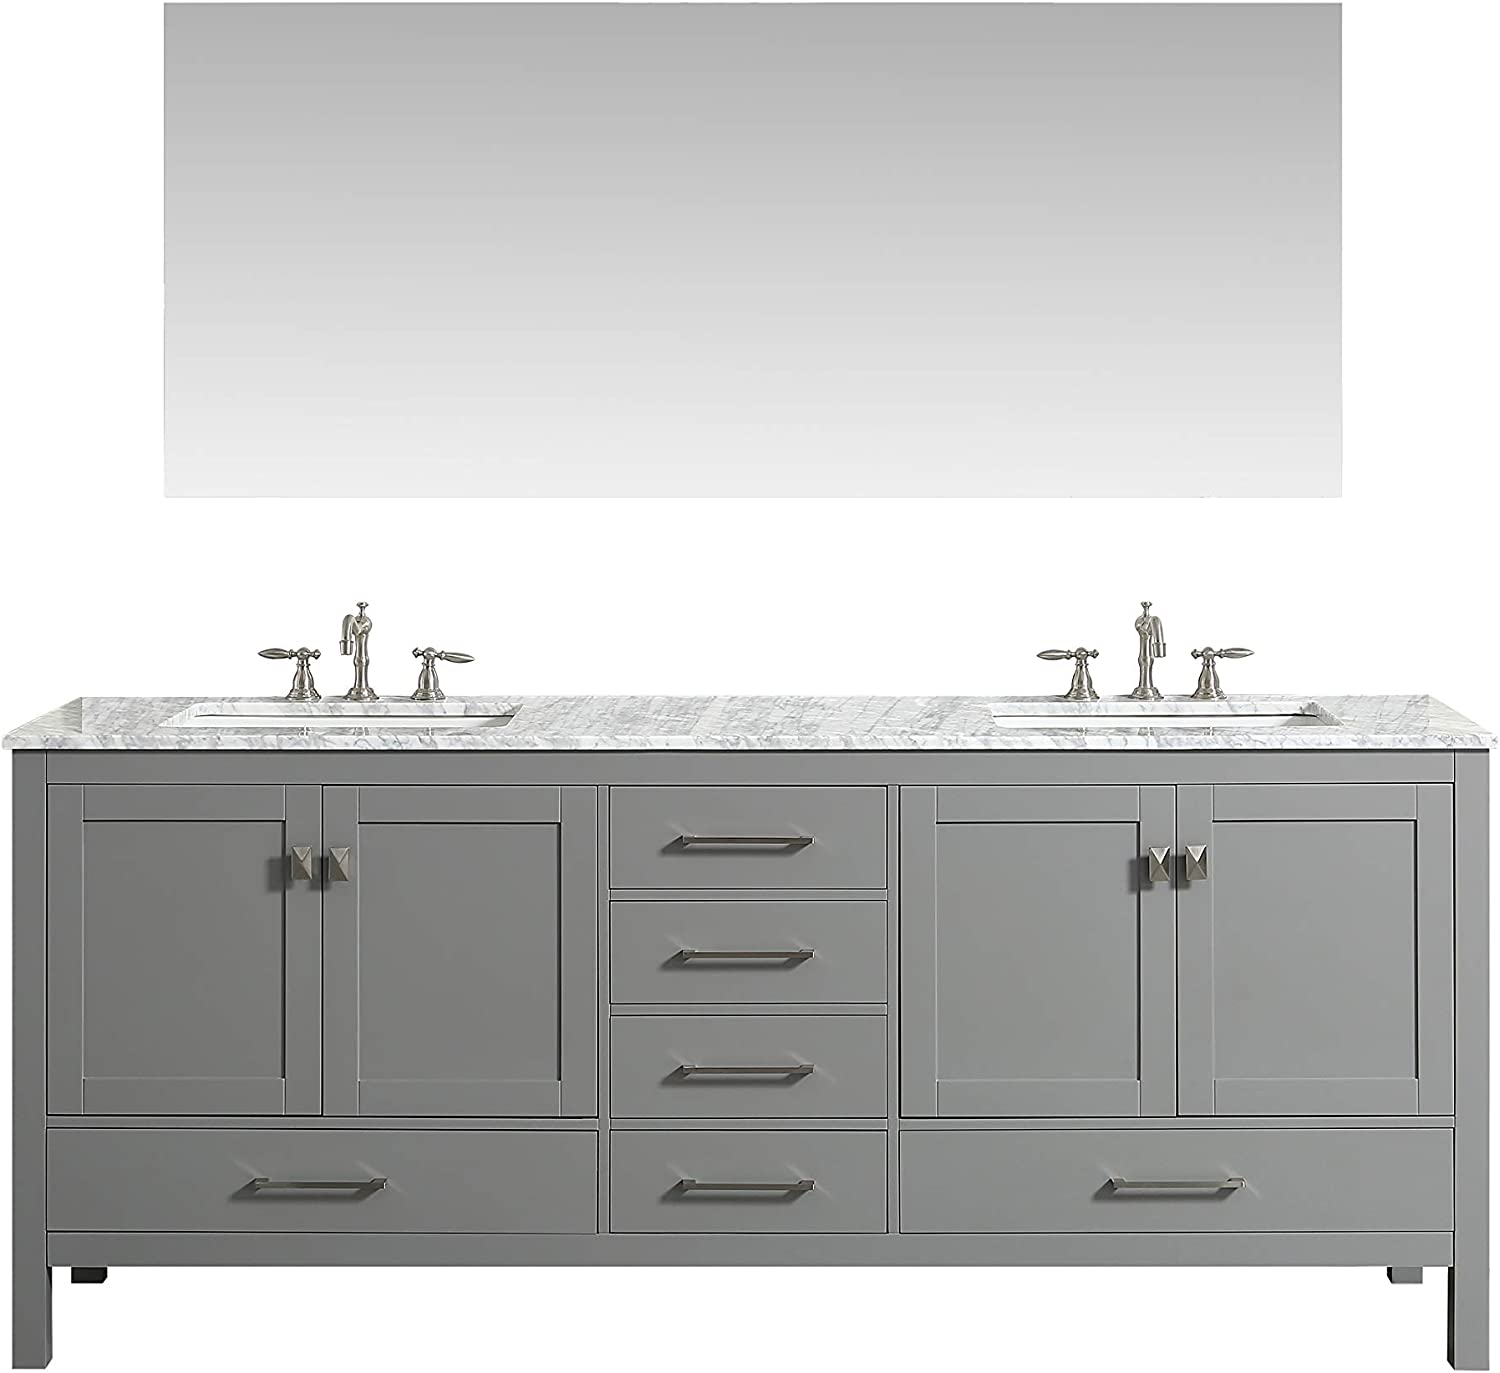 Amazon Com Eviva Aberdeen 84 Inch Gray Transitional Double Sink Bathroom Vanity With White Carrara Marble Countertop And Undermount Porcelain Sinks Furniture Decor